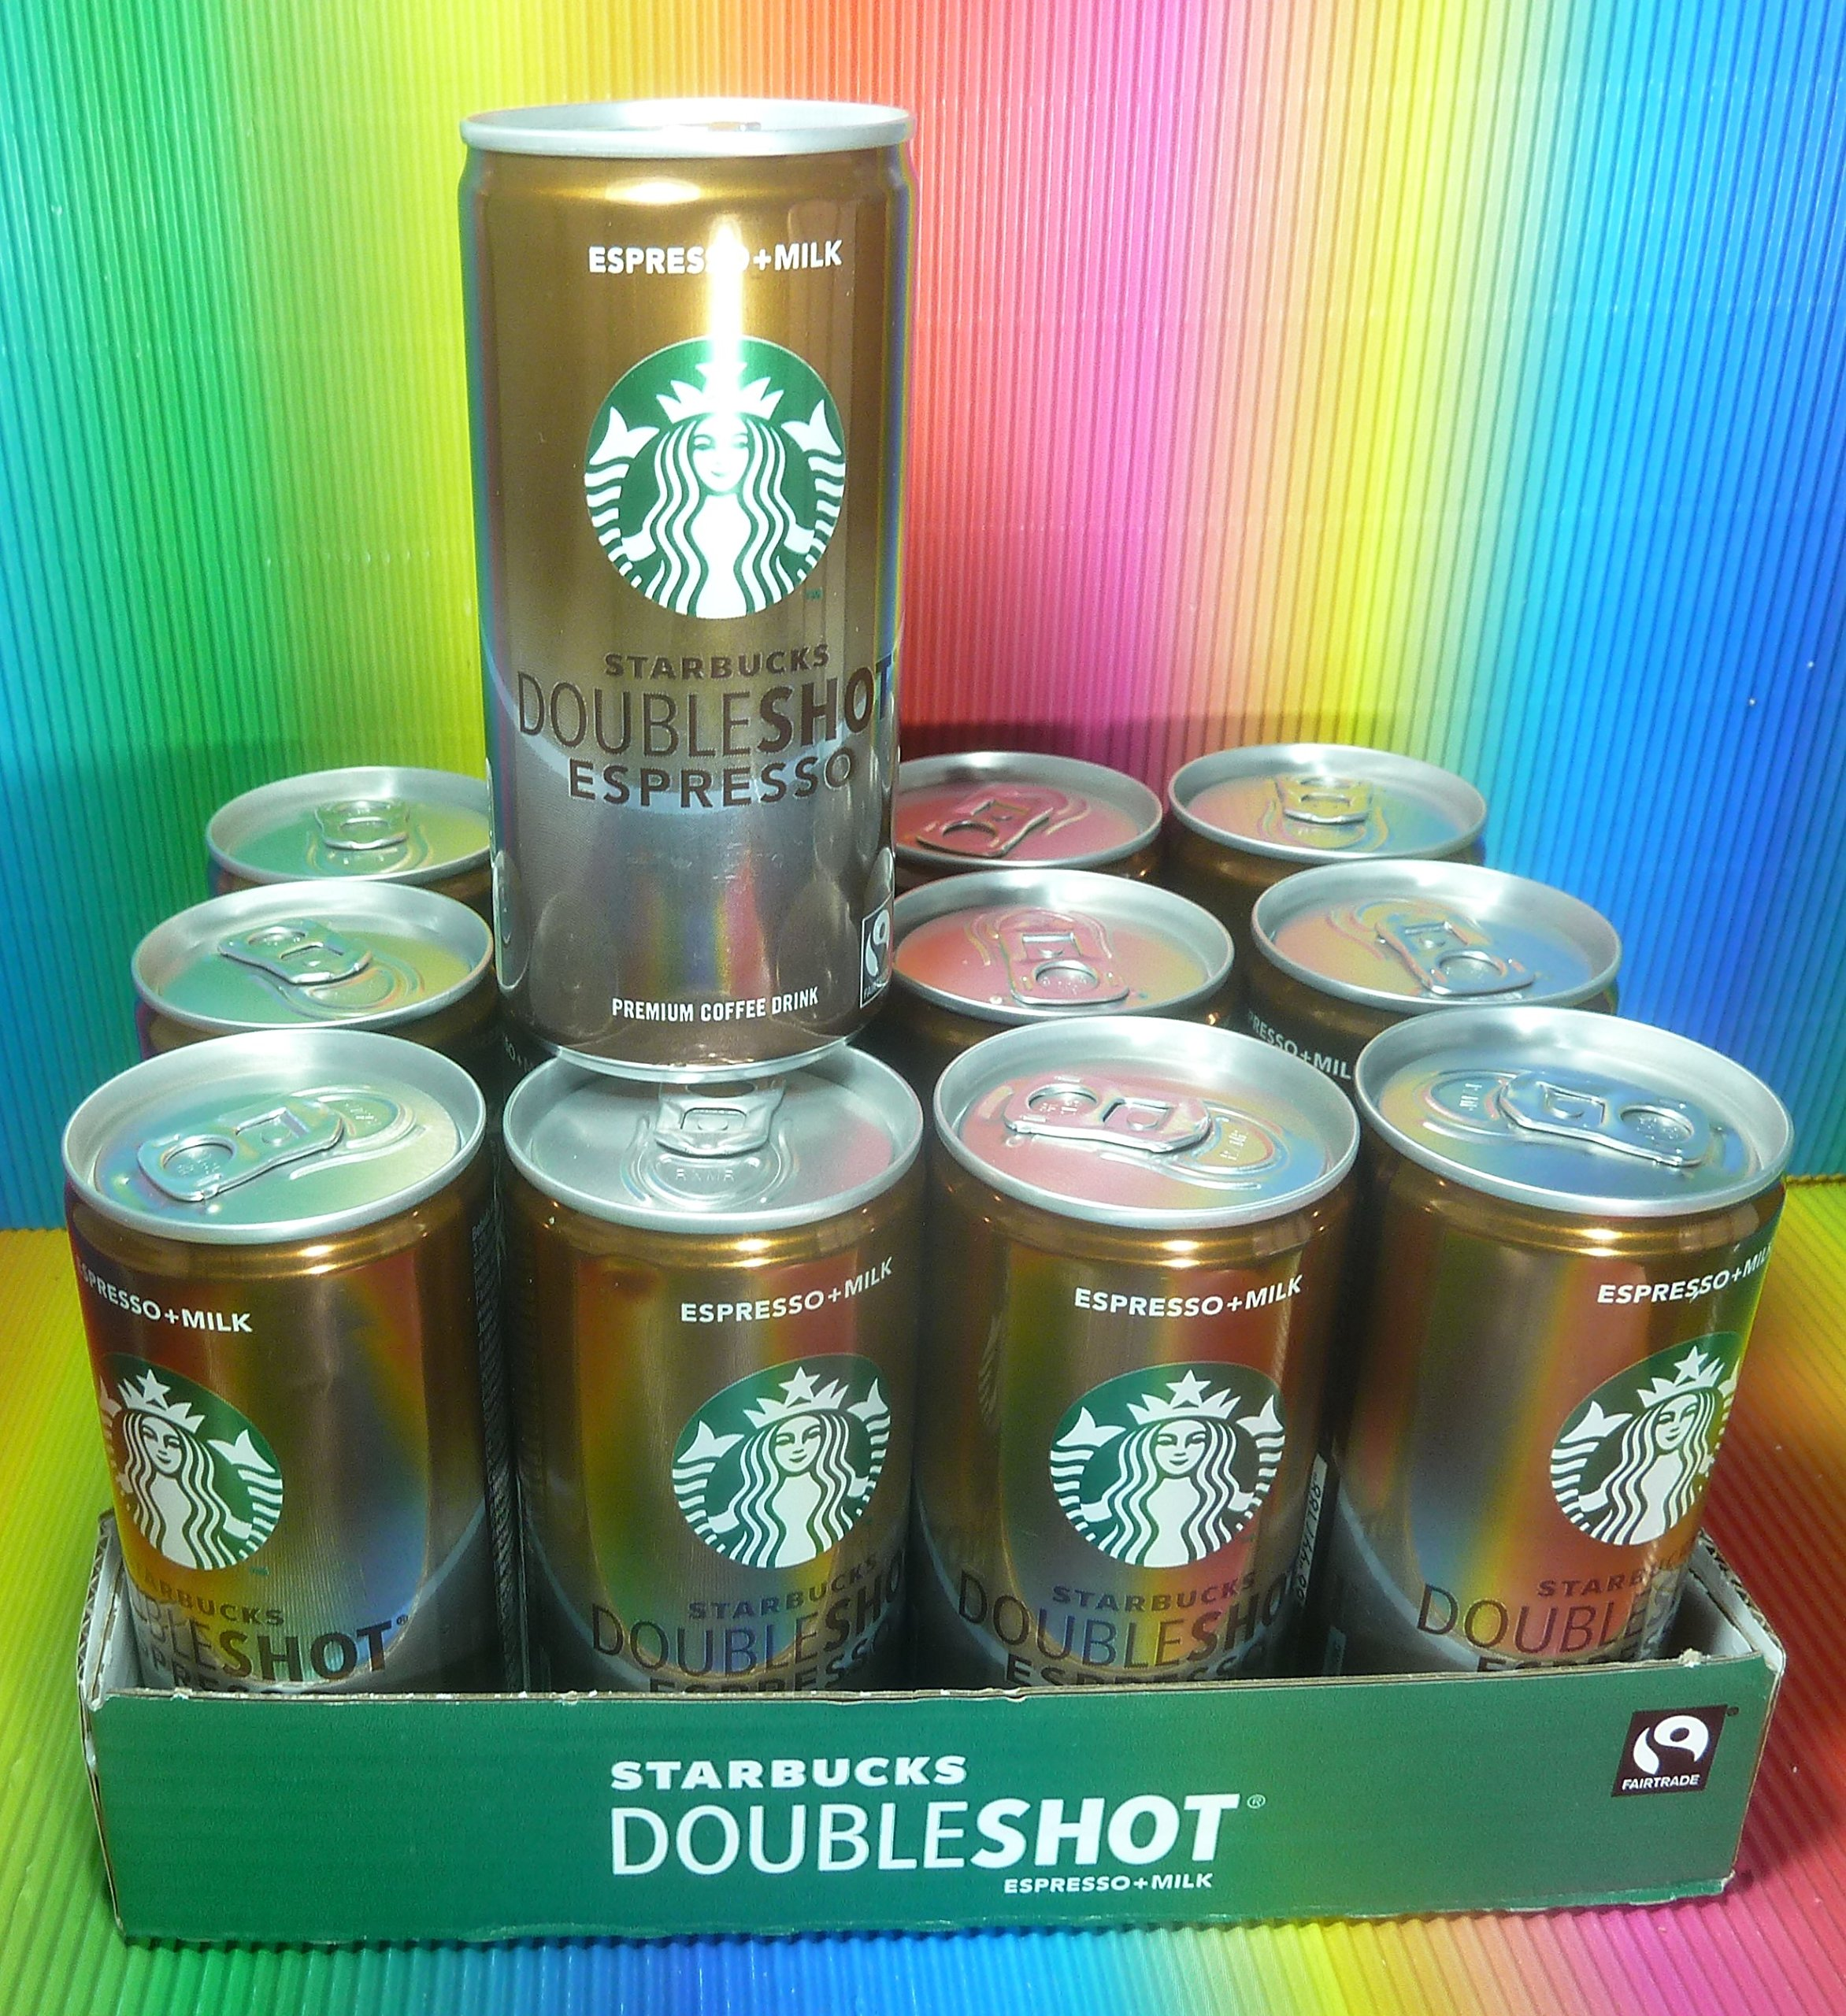 STARBUCKS ESPRESSO + MILK DOUBLESHOT ESPRESSO CAN 12 X 200 ML,PREMIUM COFFEE